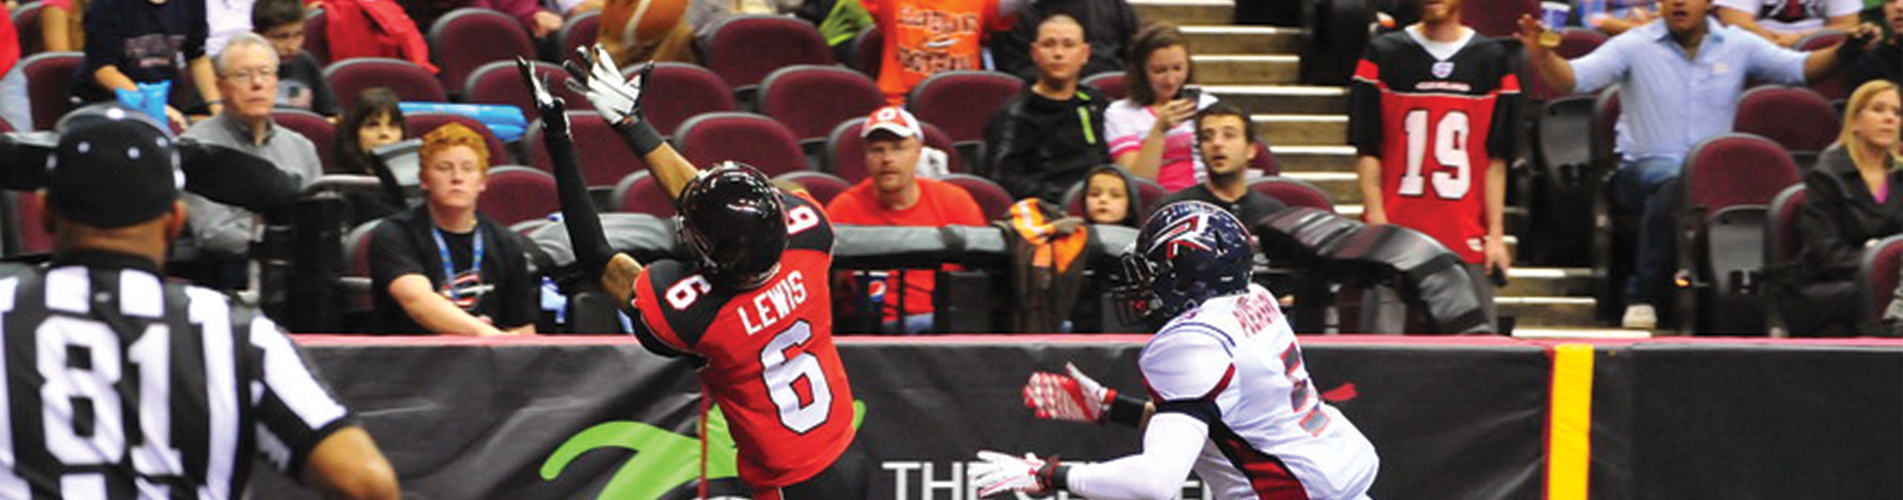 WR Thyron Lewis Signs With the Cobras